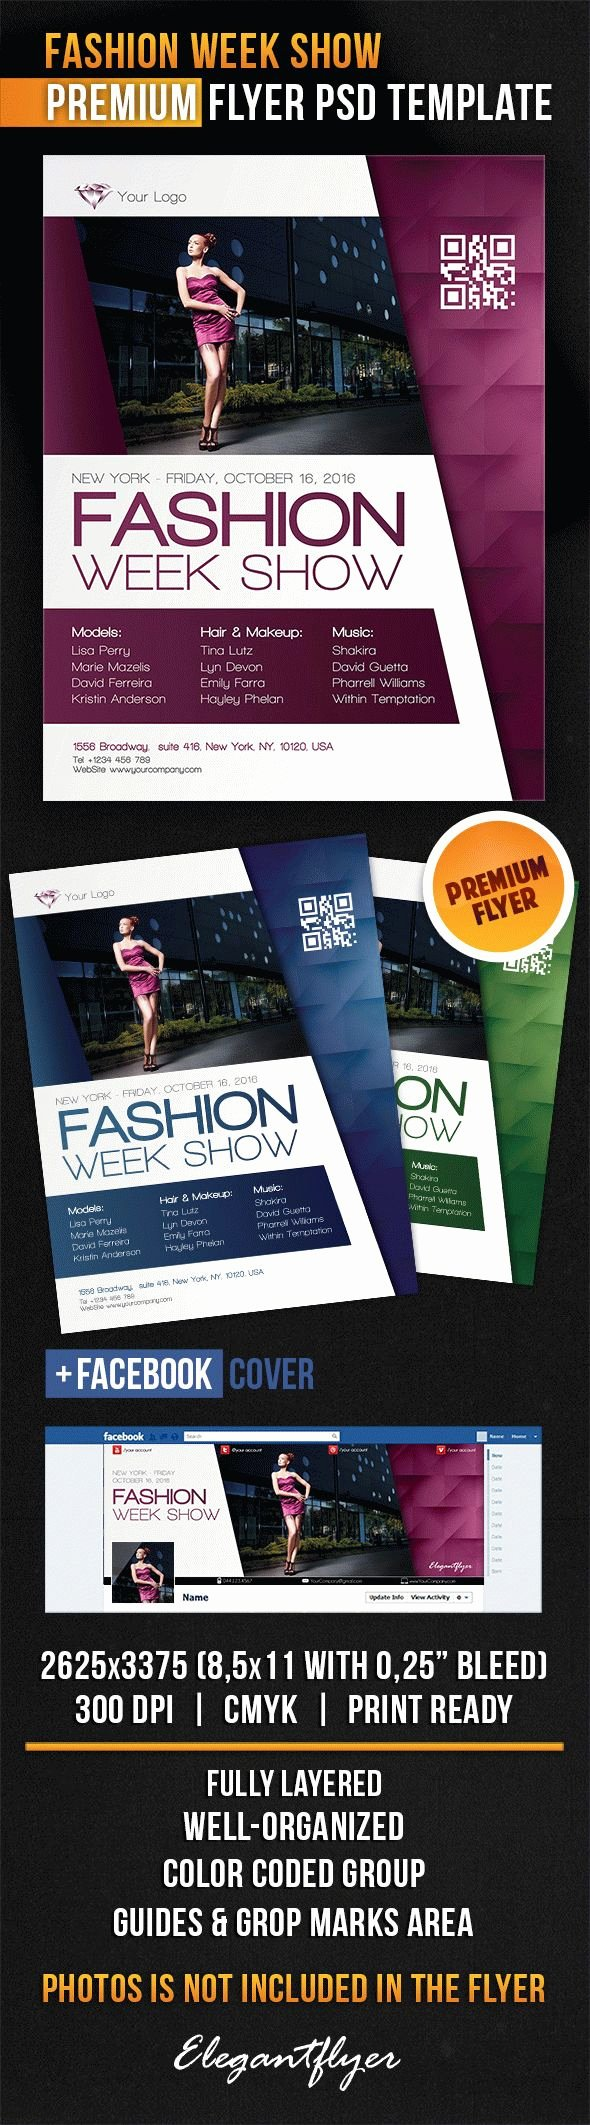 Fashion Show Flyer Template Free Lovely Fashion Week Show Flyer Psd Template Cover